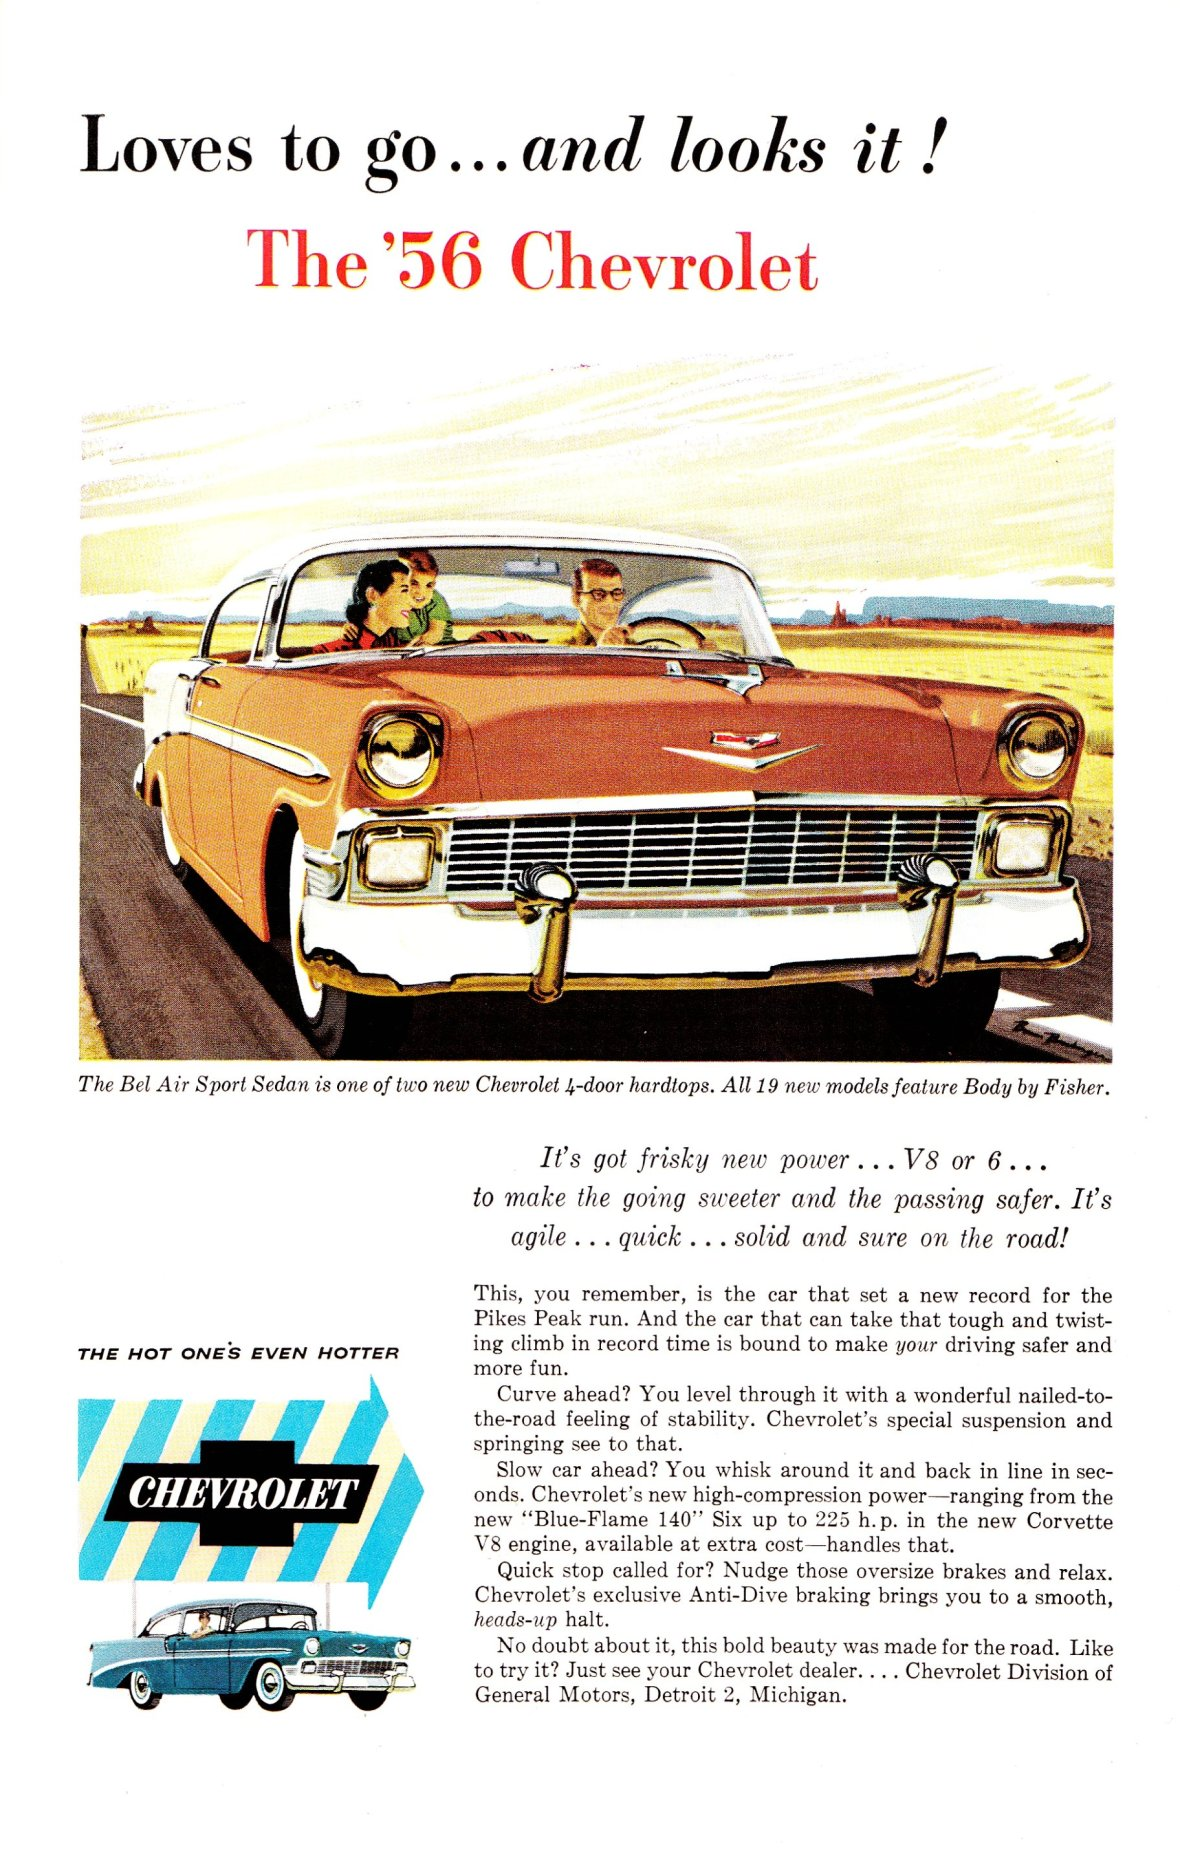 1956 Chevrolet Bel Air Sport Sedan - published in National Geographic - March 1956